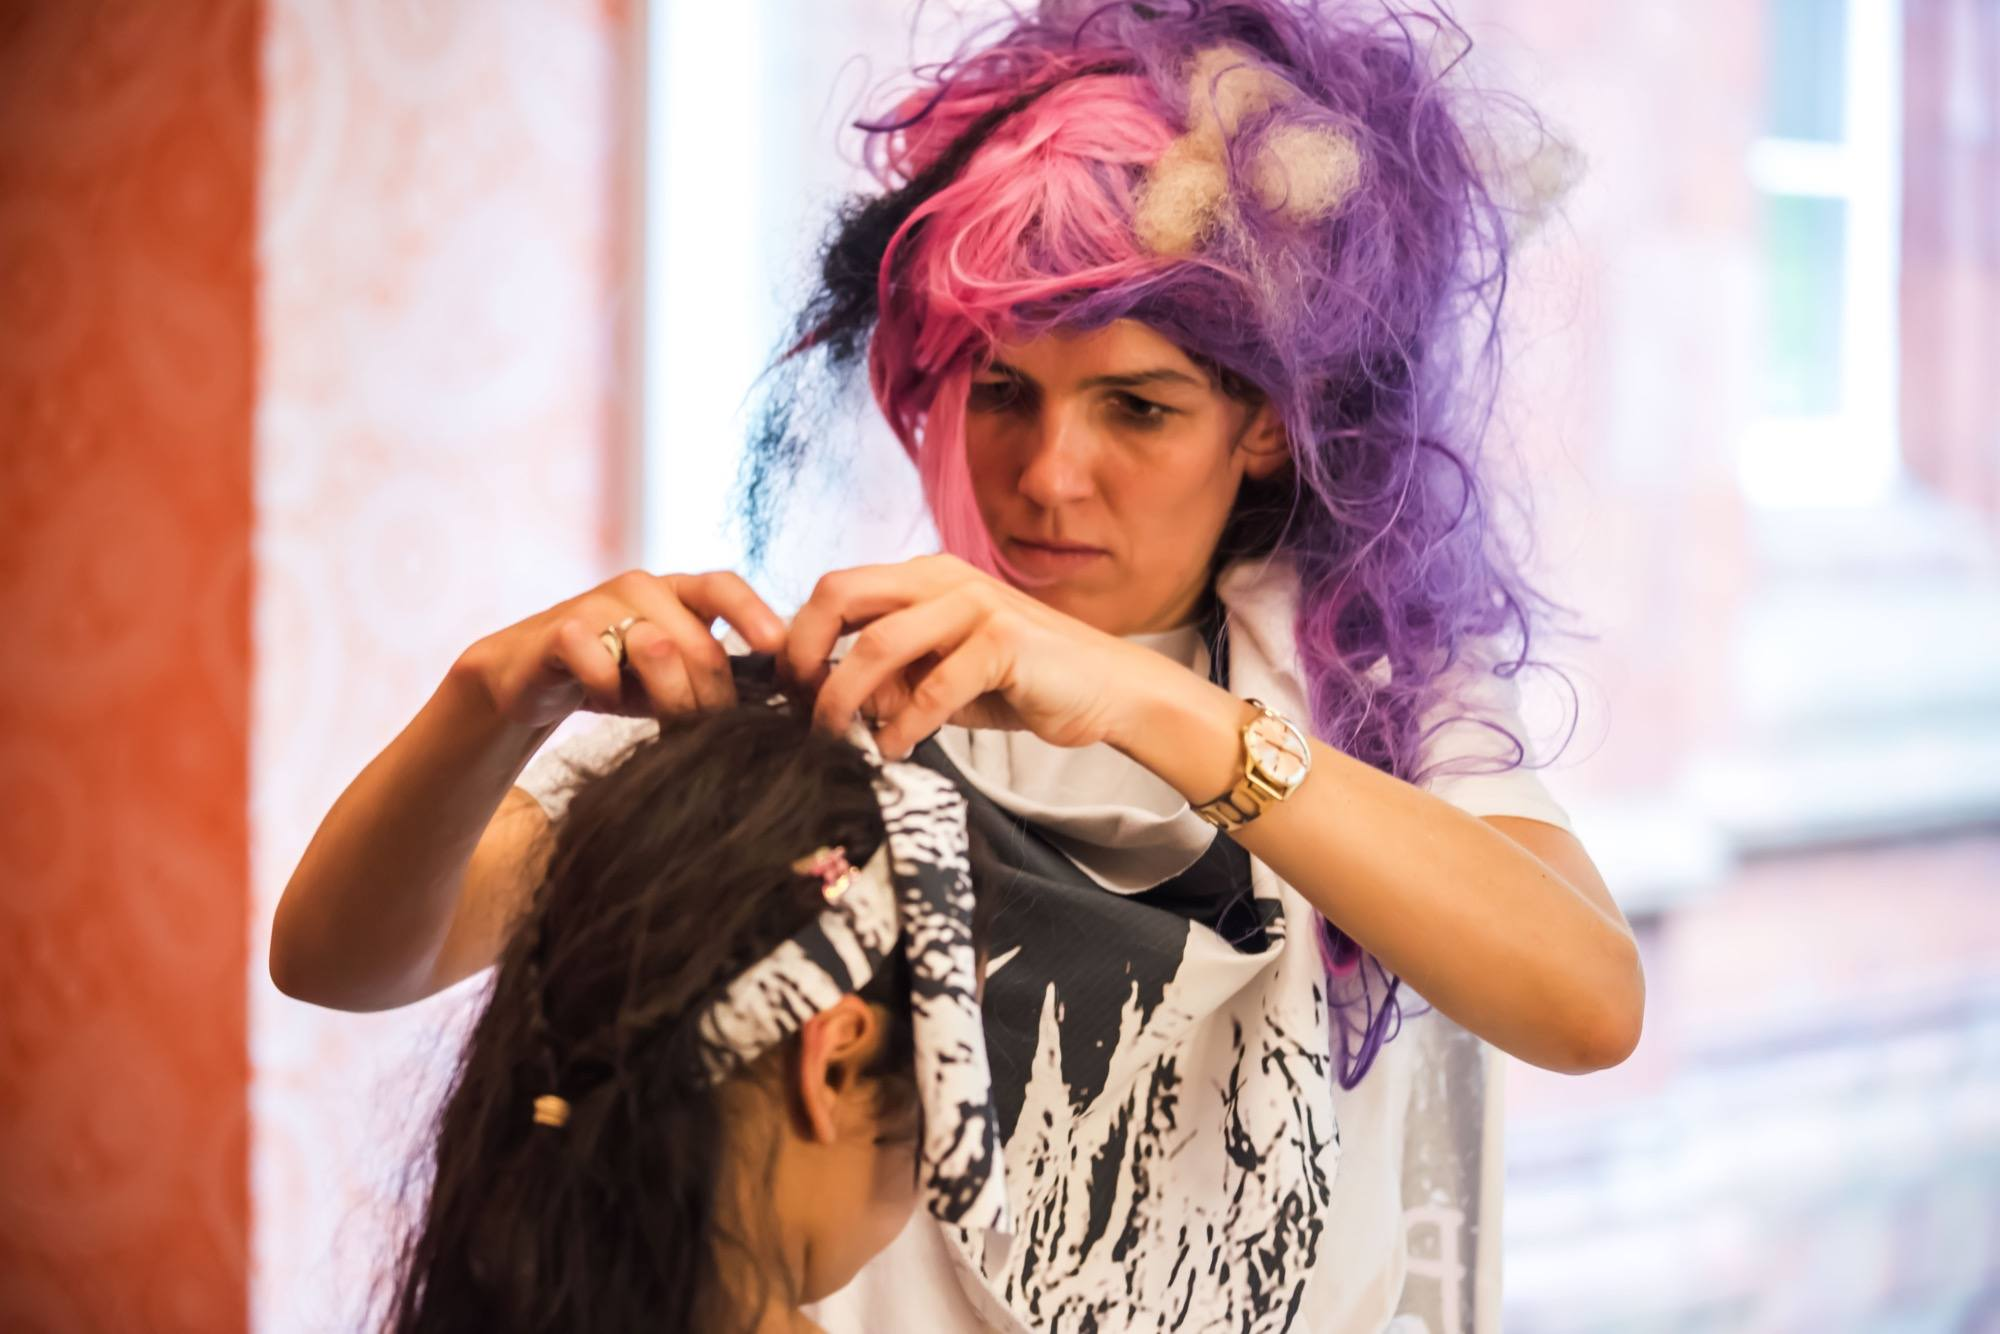 person having their hair done by a woman with crazy pink hair